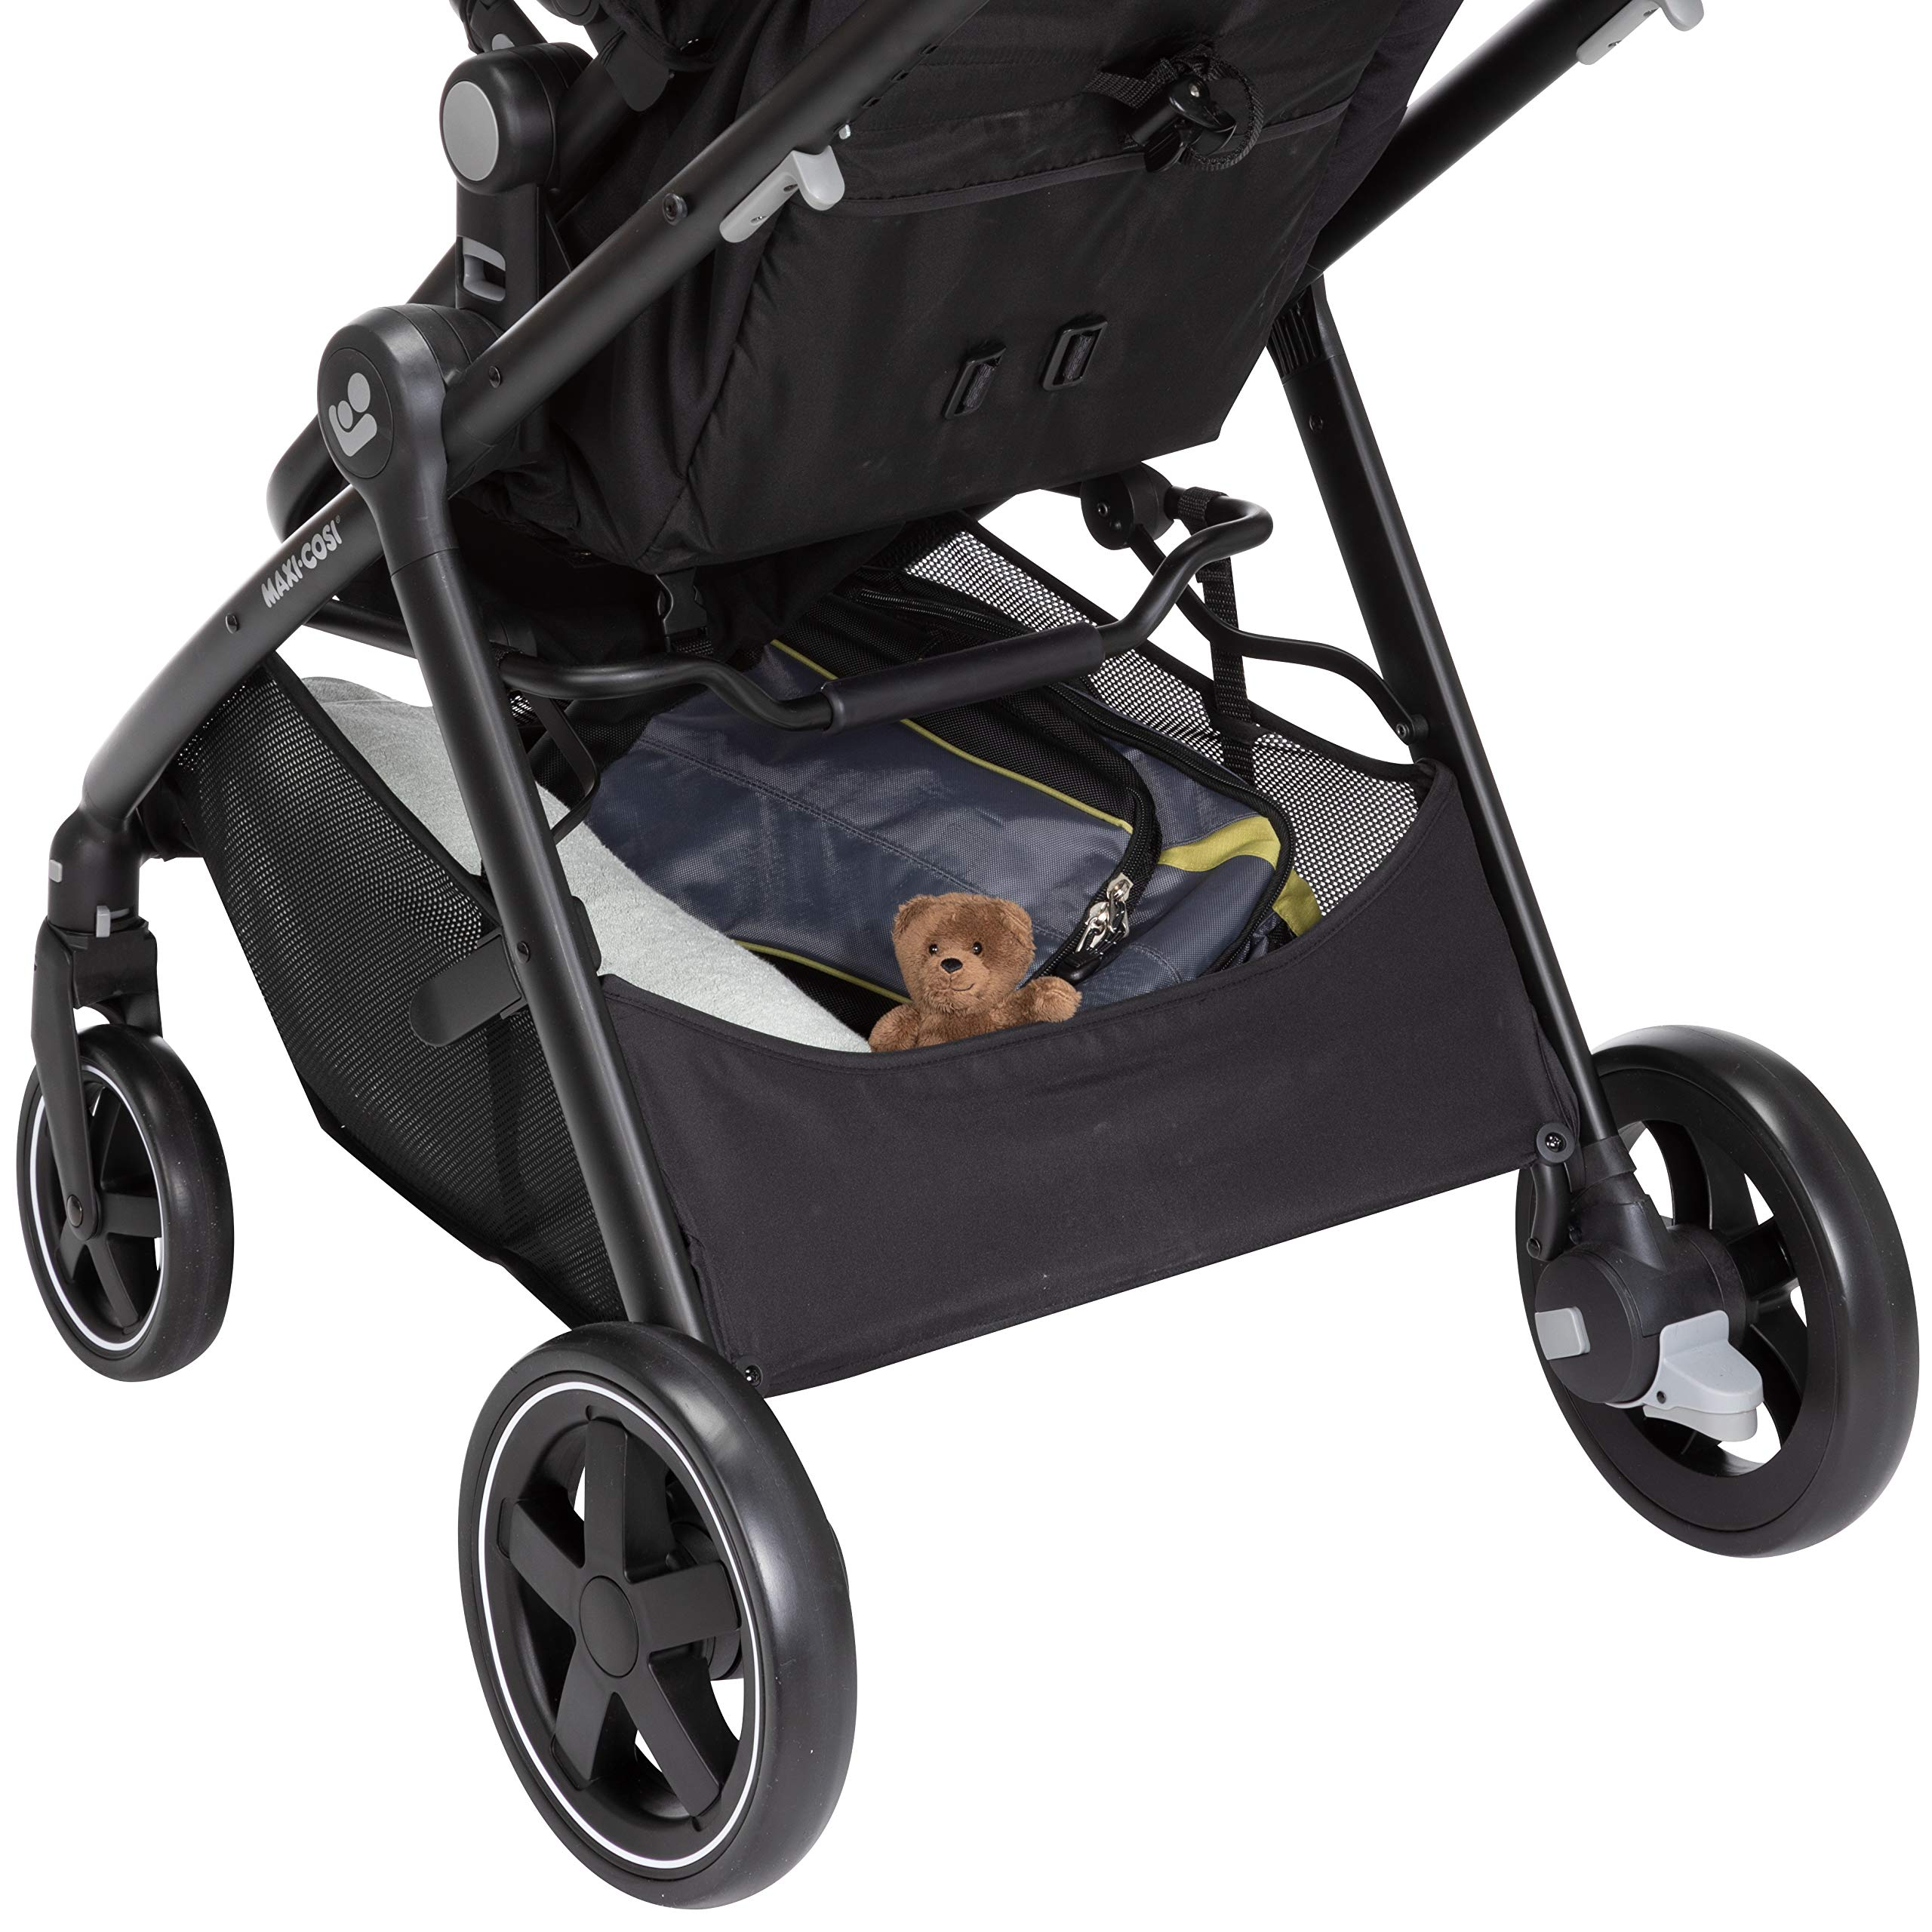 Maxi-Cosi Zelia Stroller, Night Black, One Size by Maxi-Cosi (Image #10)